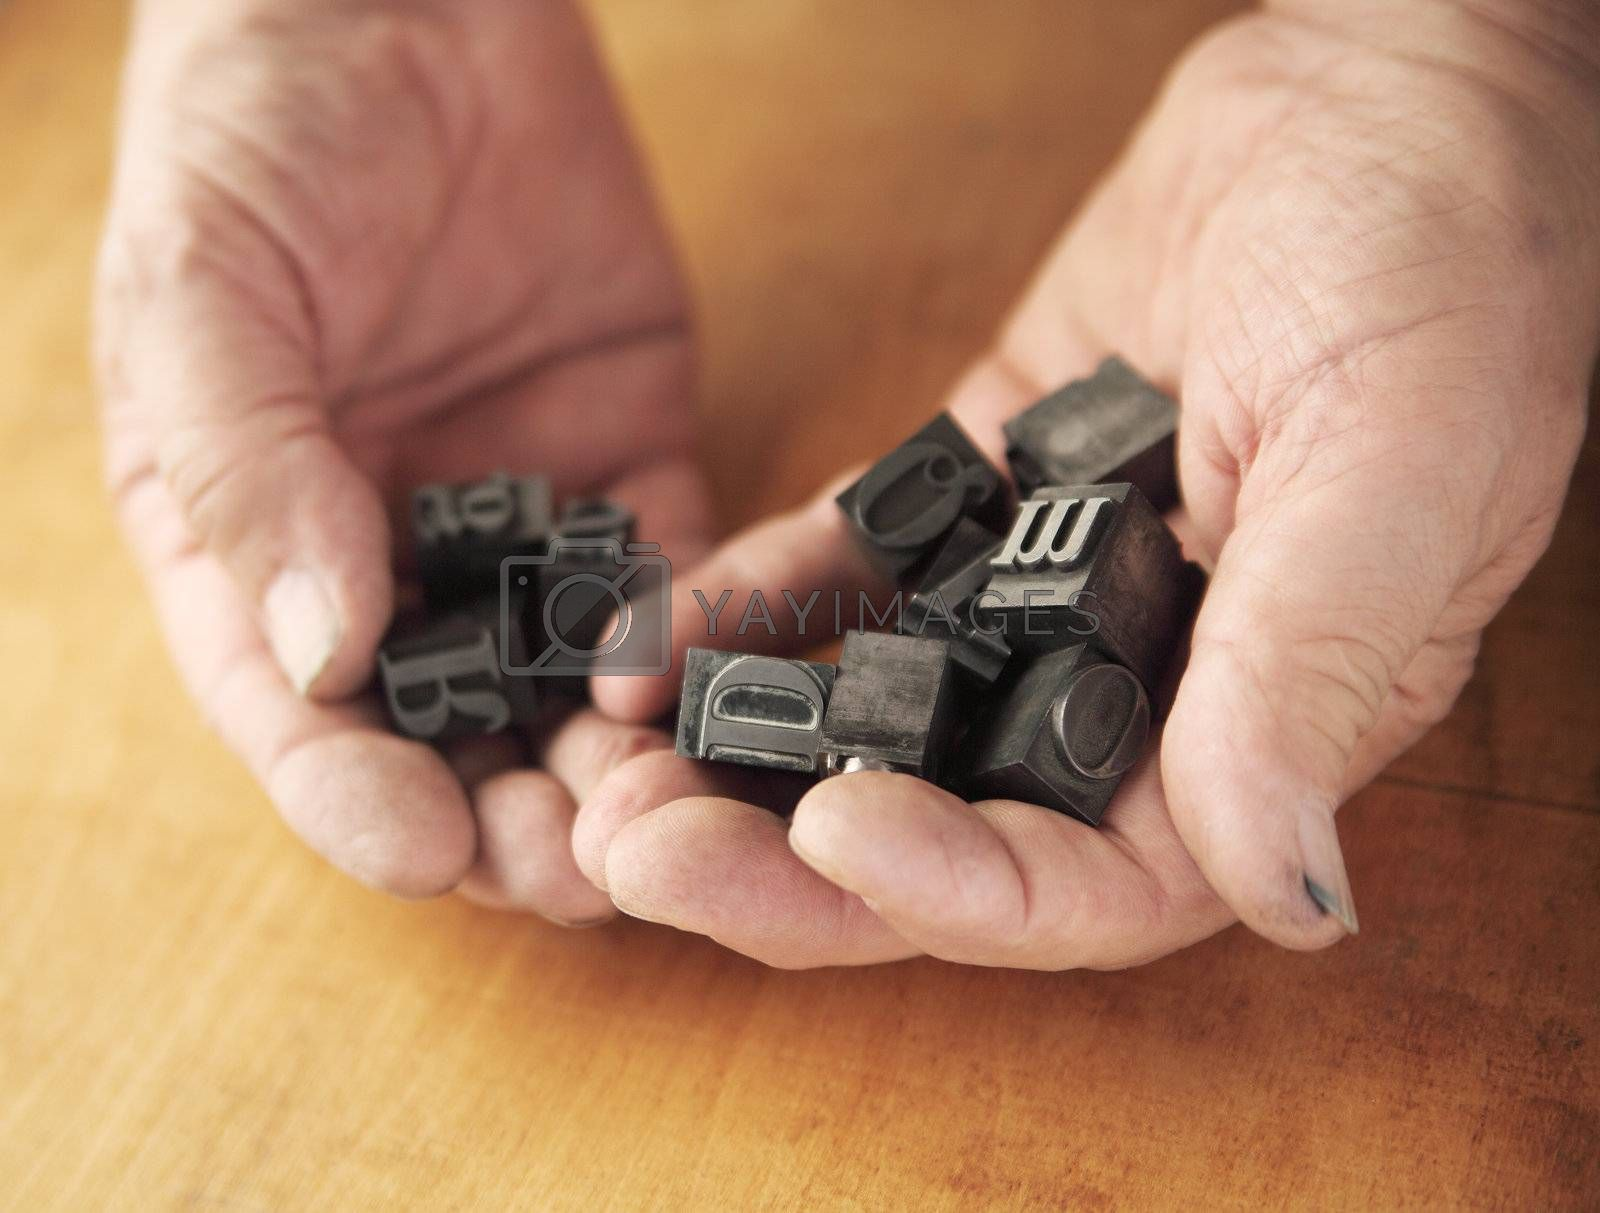 printer's ink-stained hands holding metal type pieces